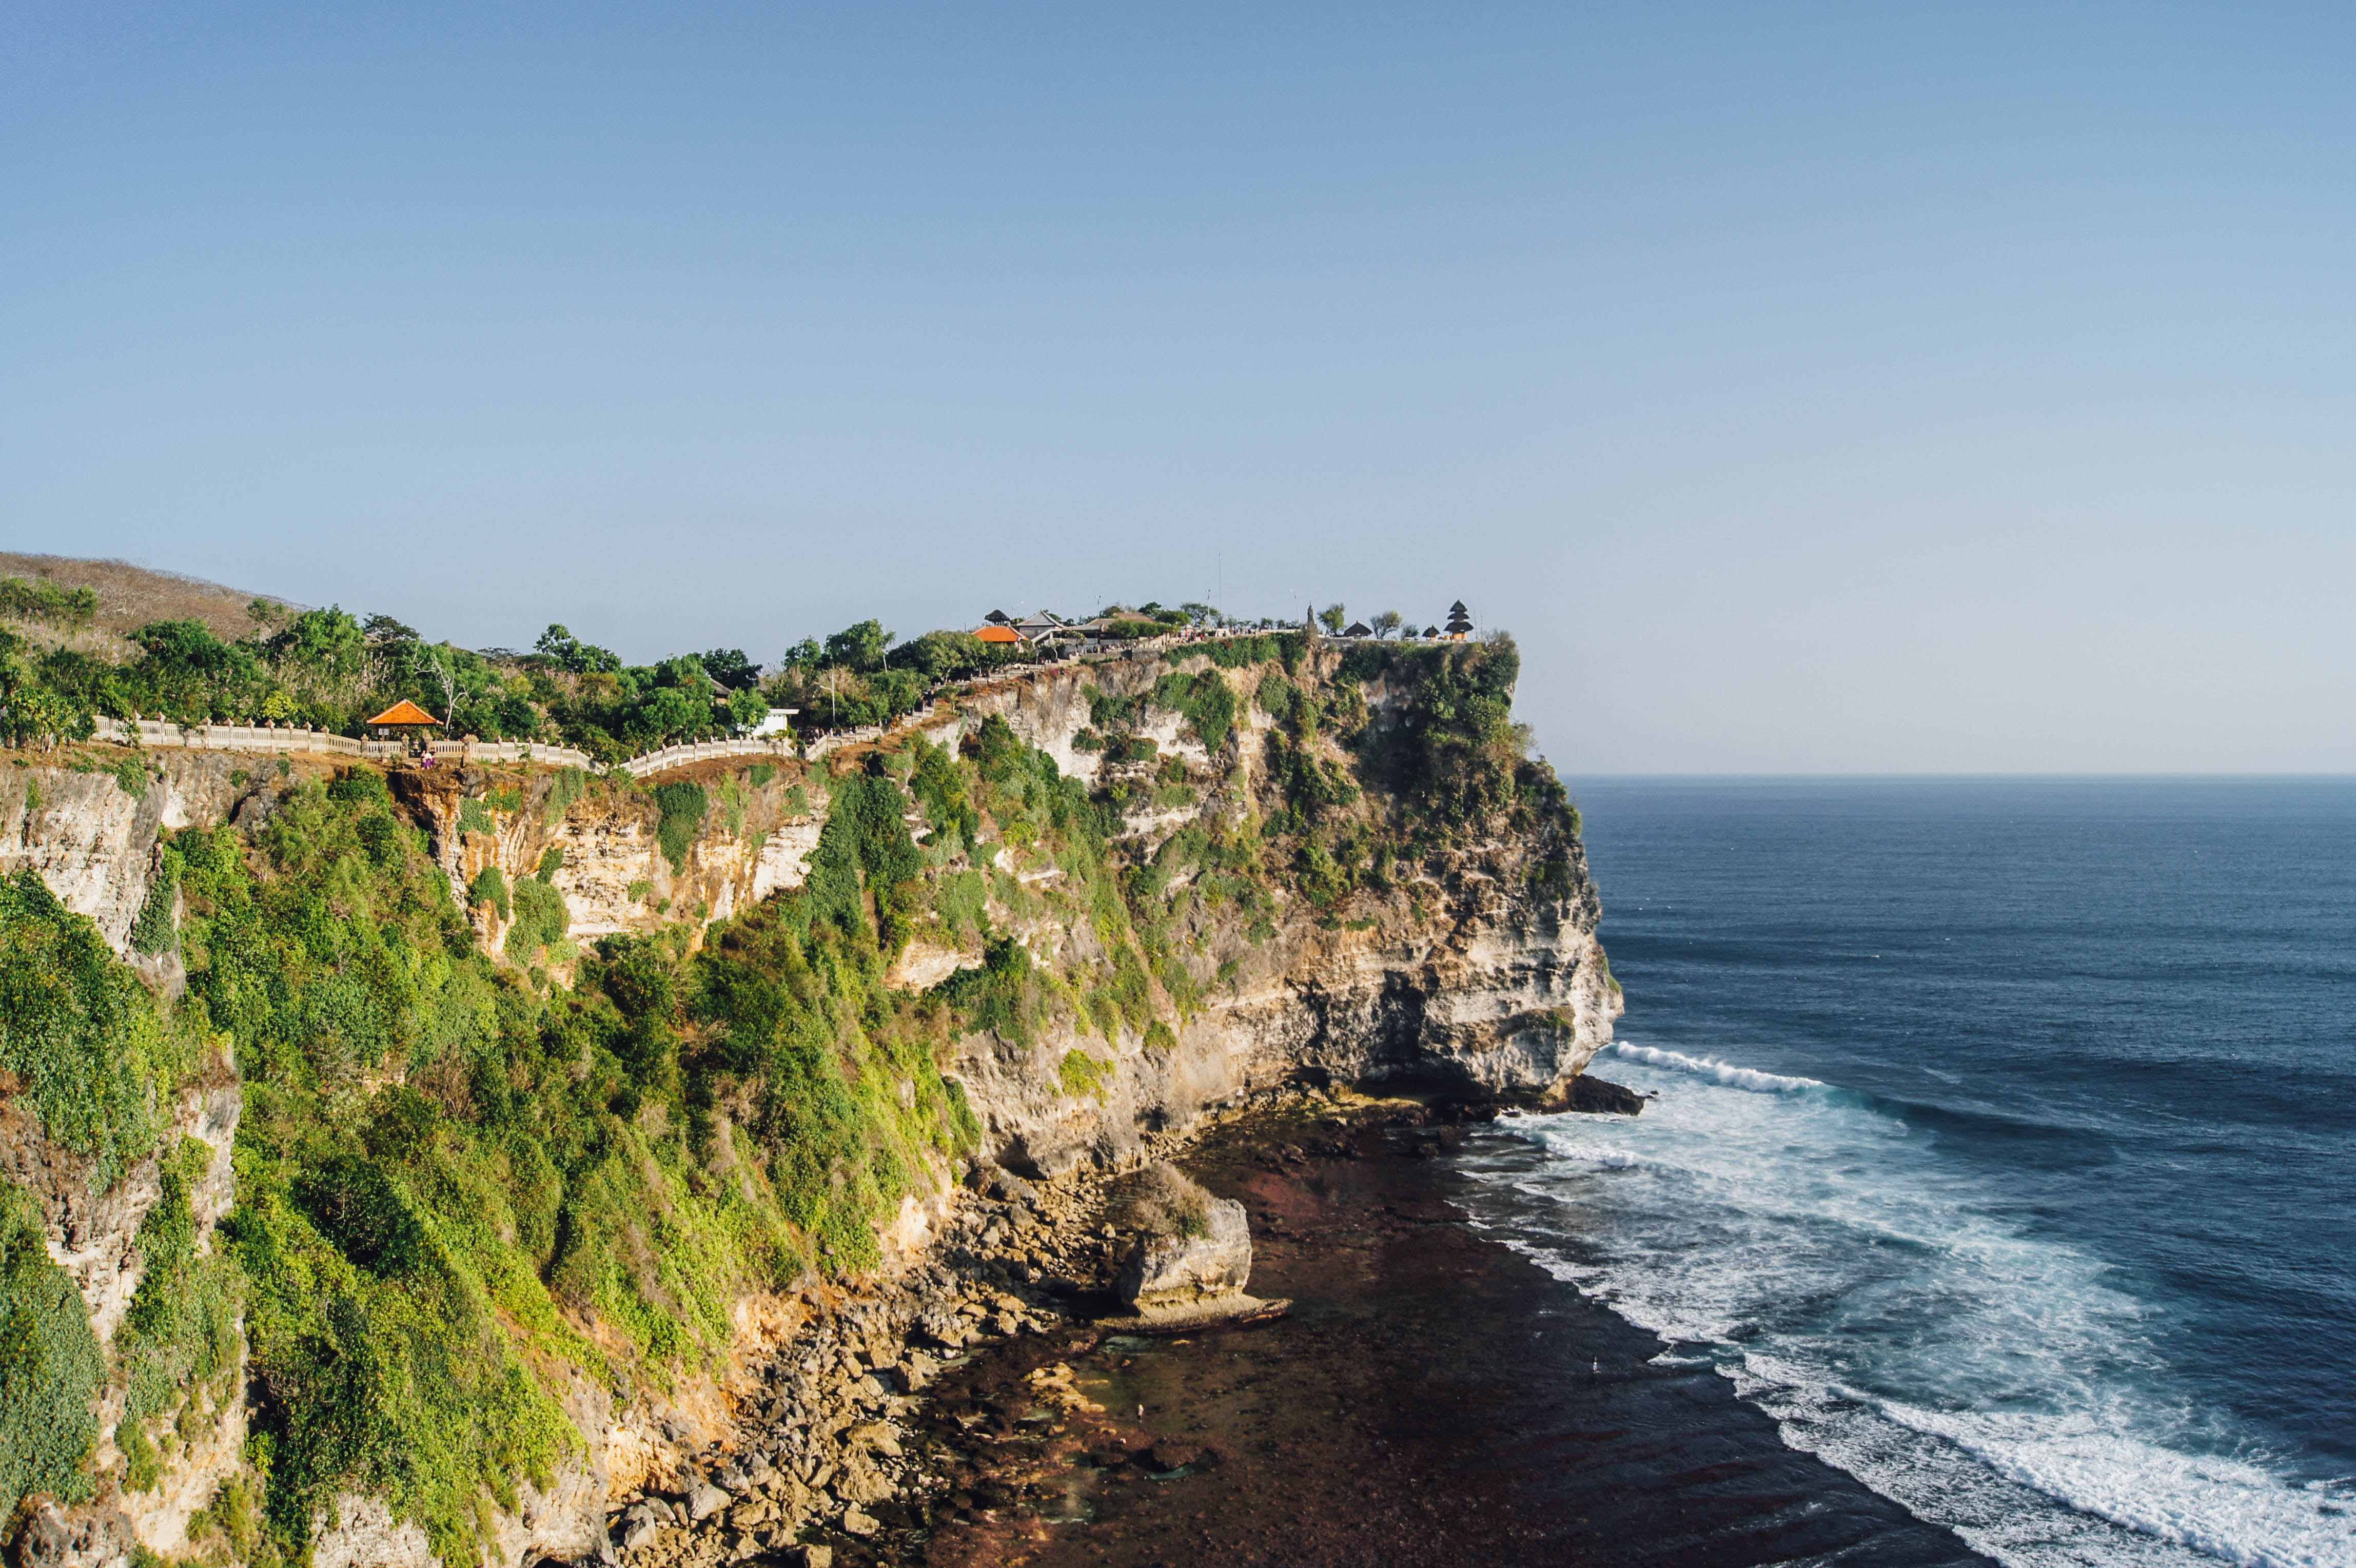 Scenic beach on a cliff features nature's finest rocks, trees and foliage with sea underneath